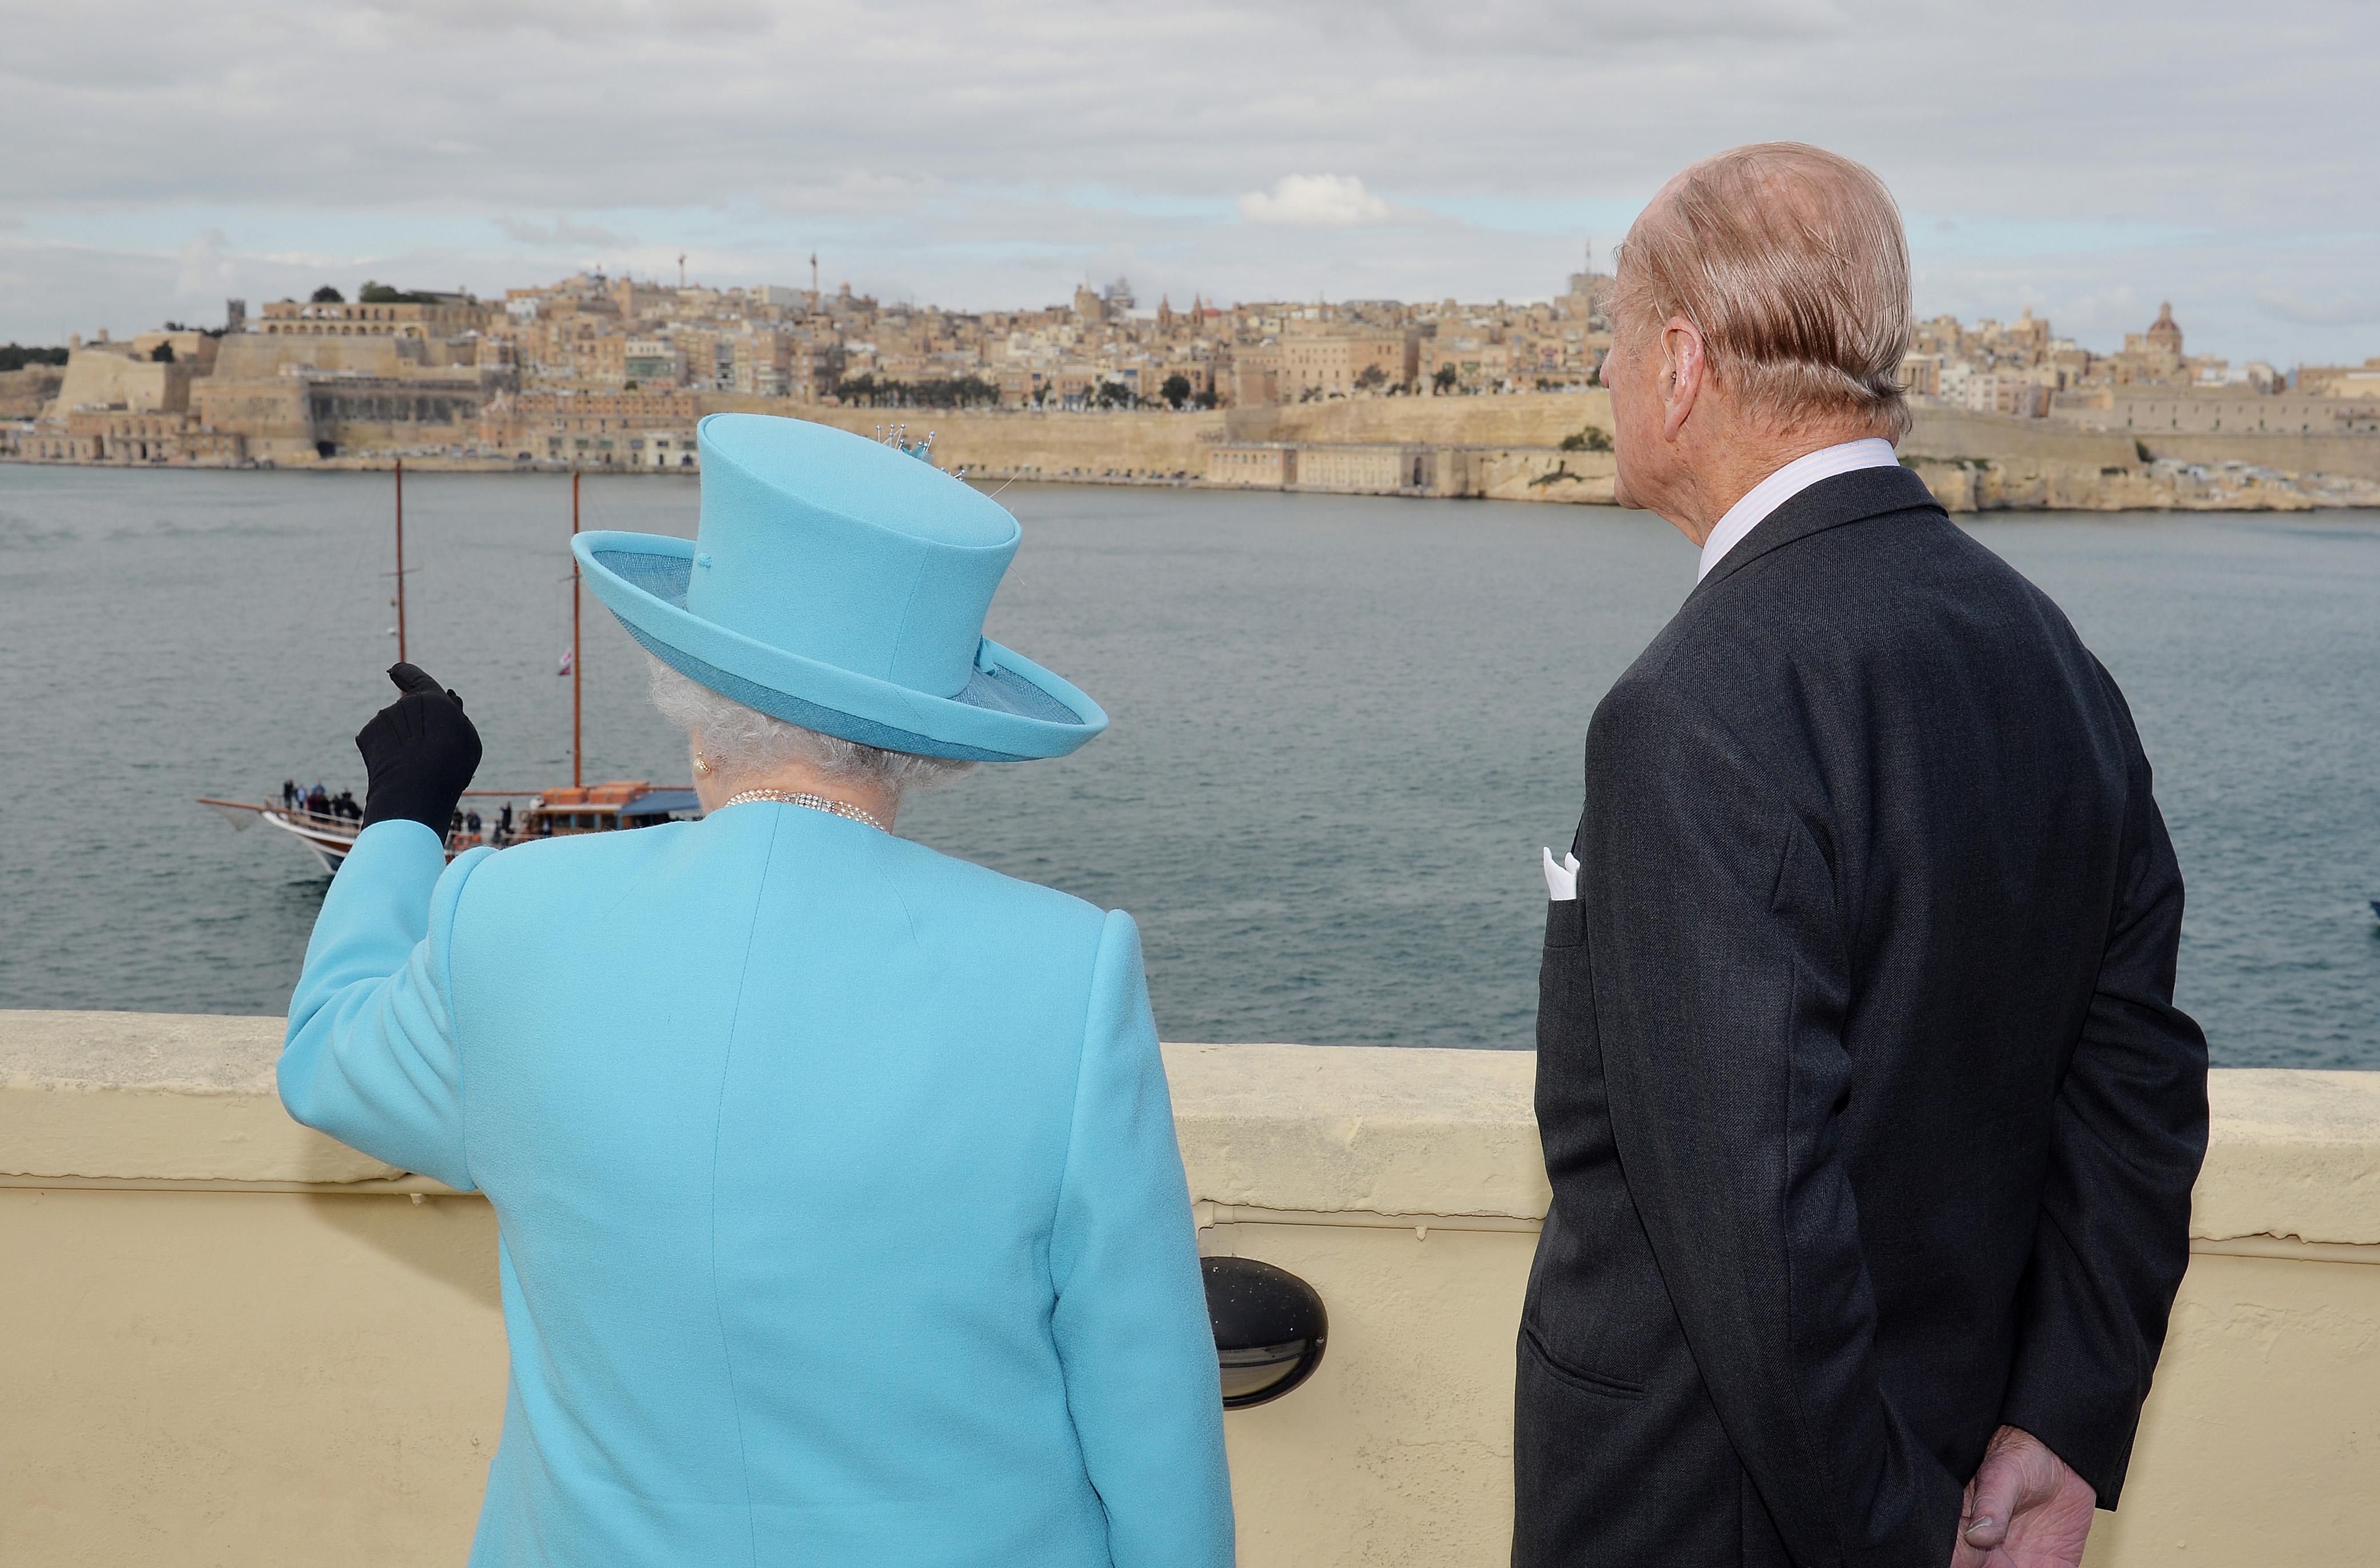 The Queen and Prince Philip last visited Malta back in 2015 [Photo: Getty]